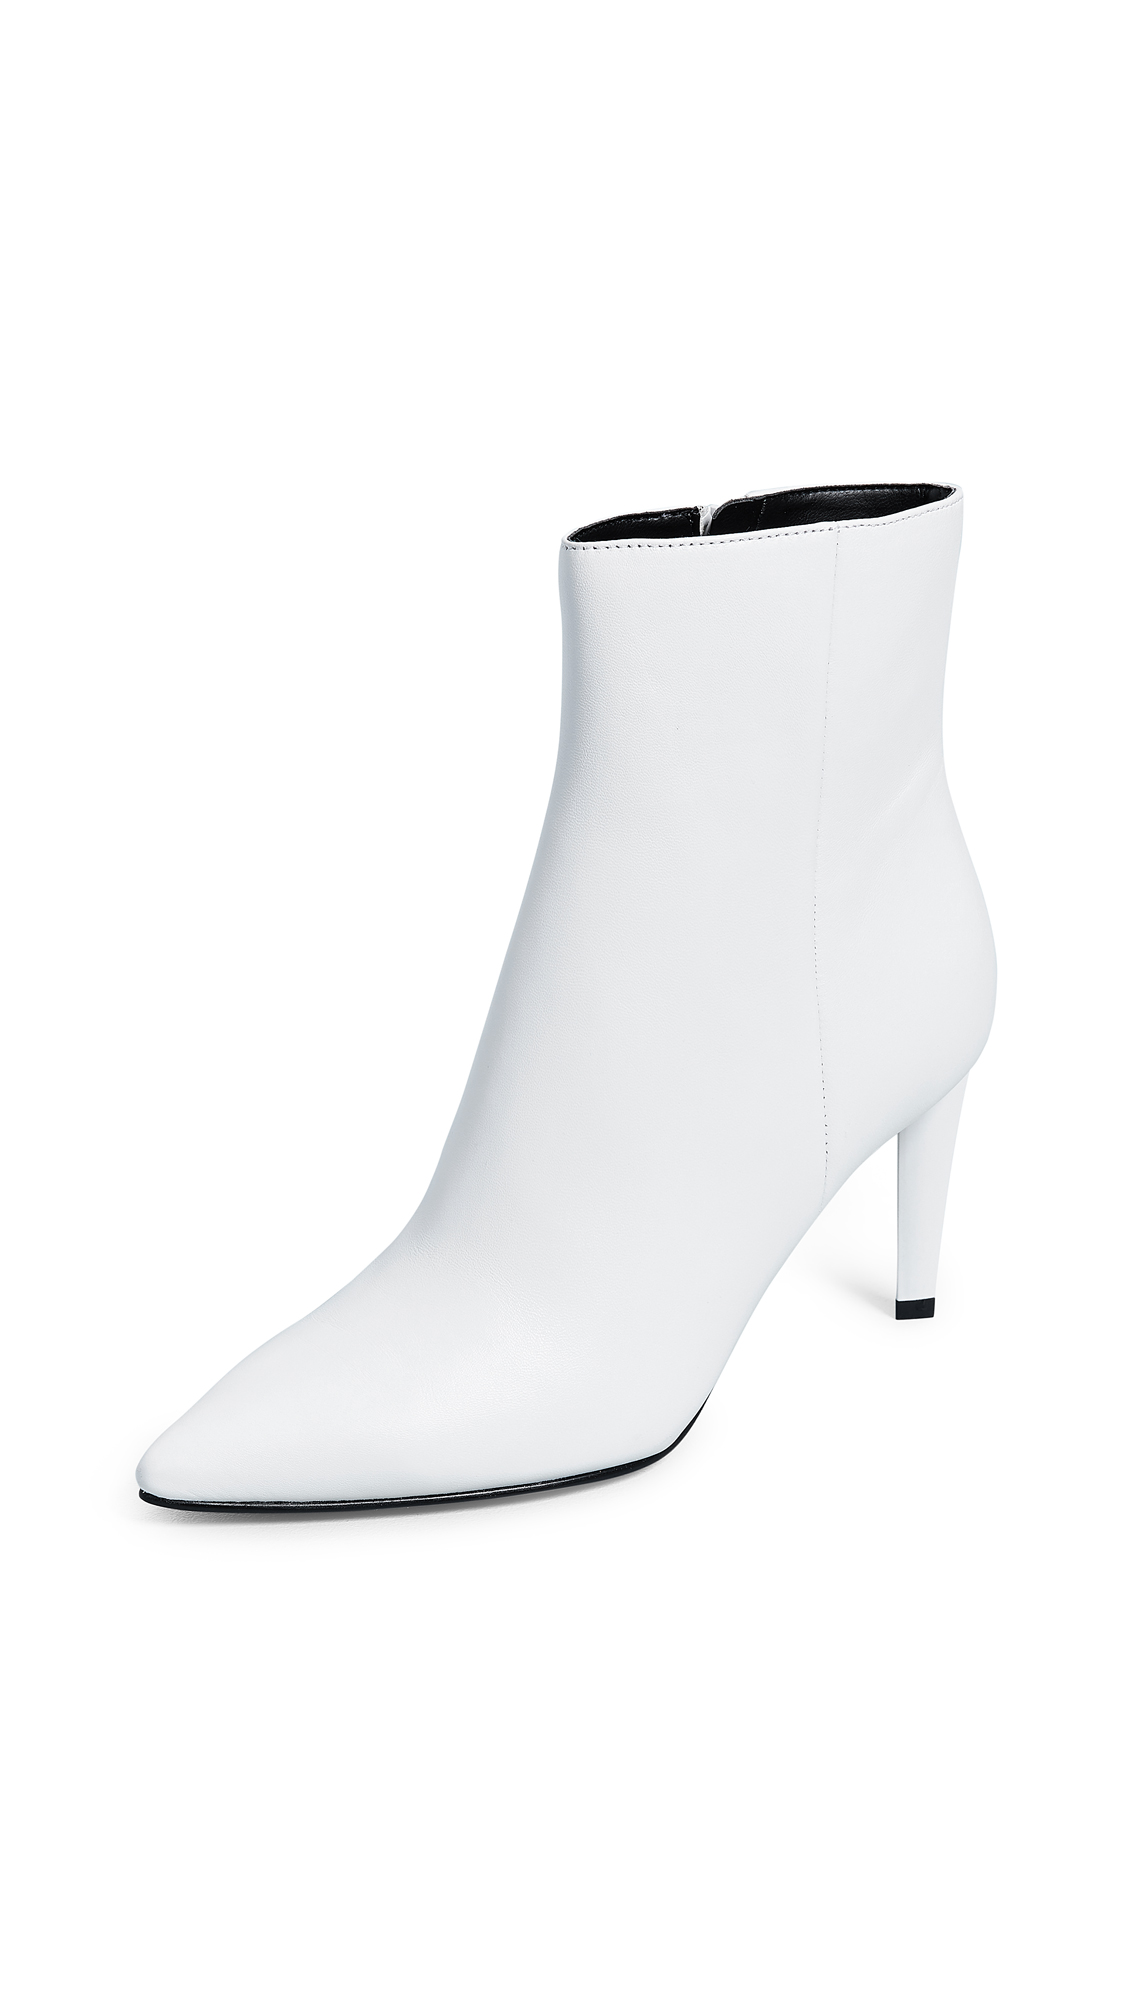 KENDALL + KYLIE Zoe Point Toe Booties - Ivory